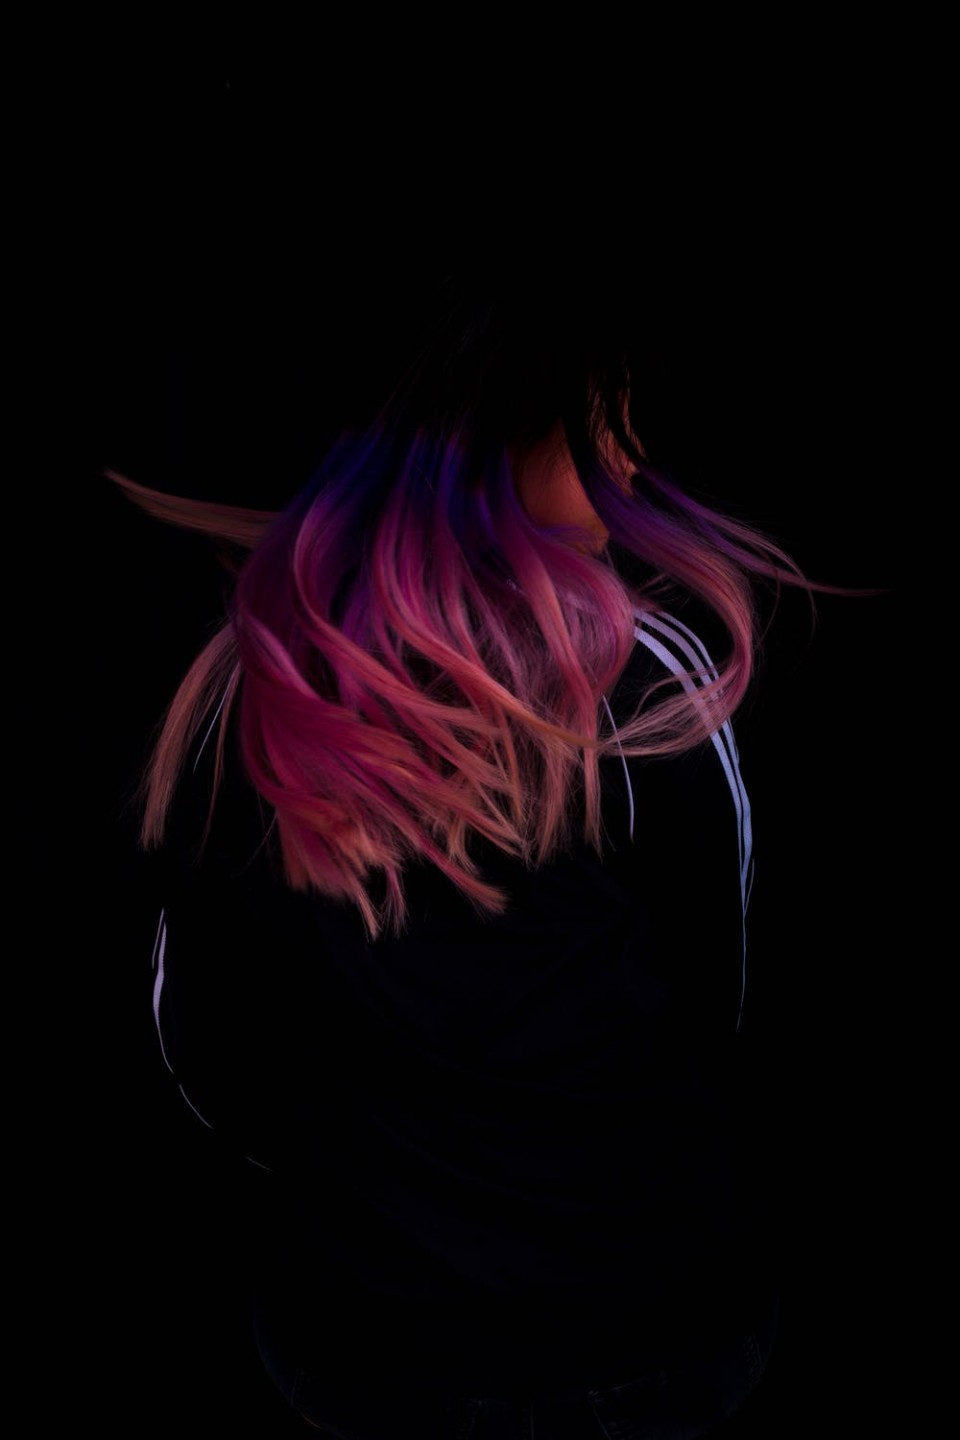 Color hair on black background